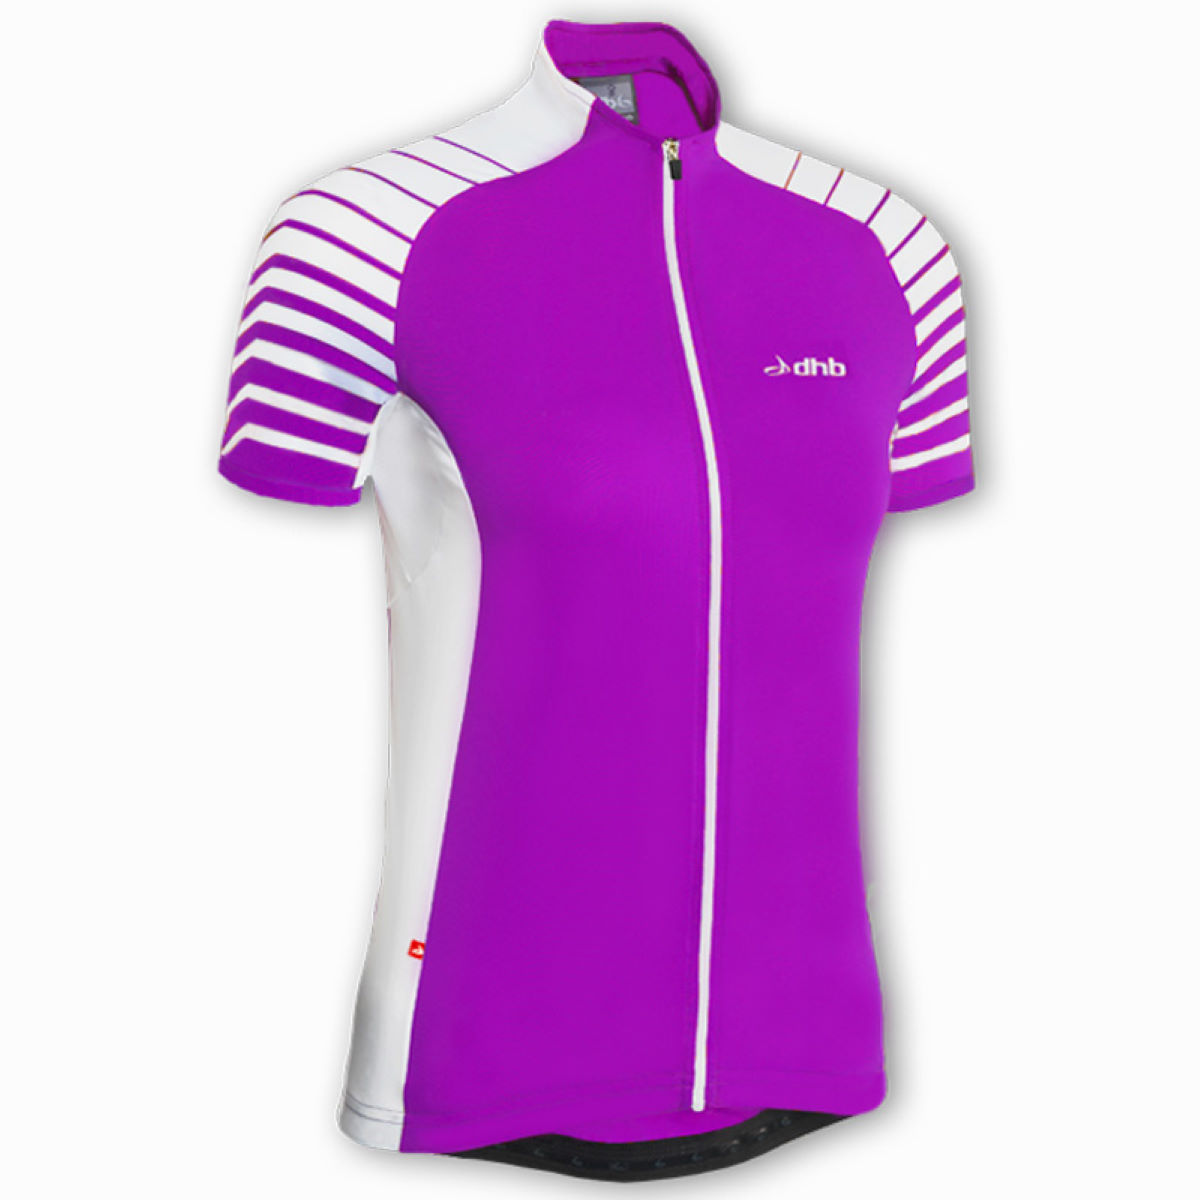 dhb Women's Chevron Air Short Sleeve Jersey